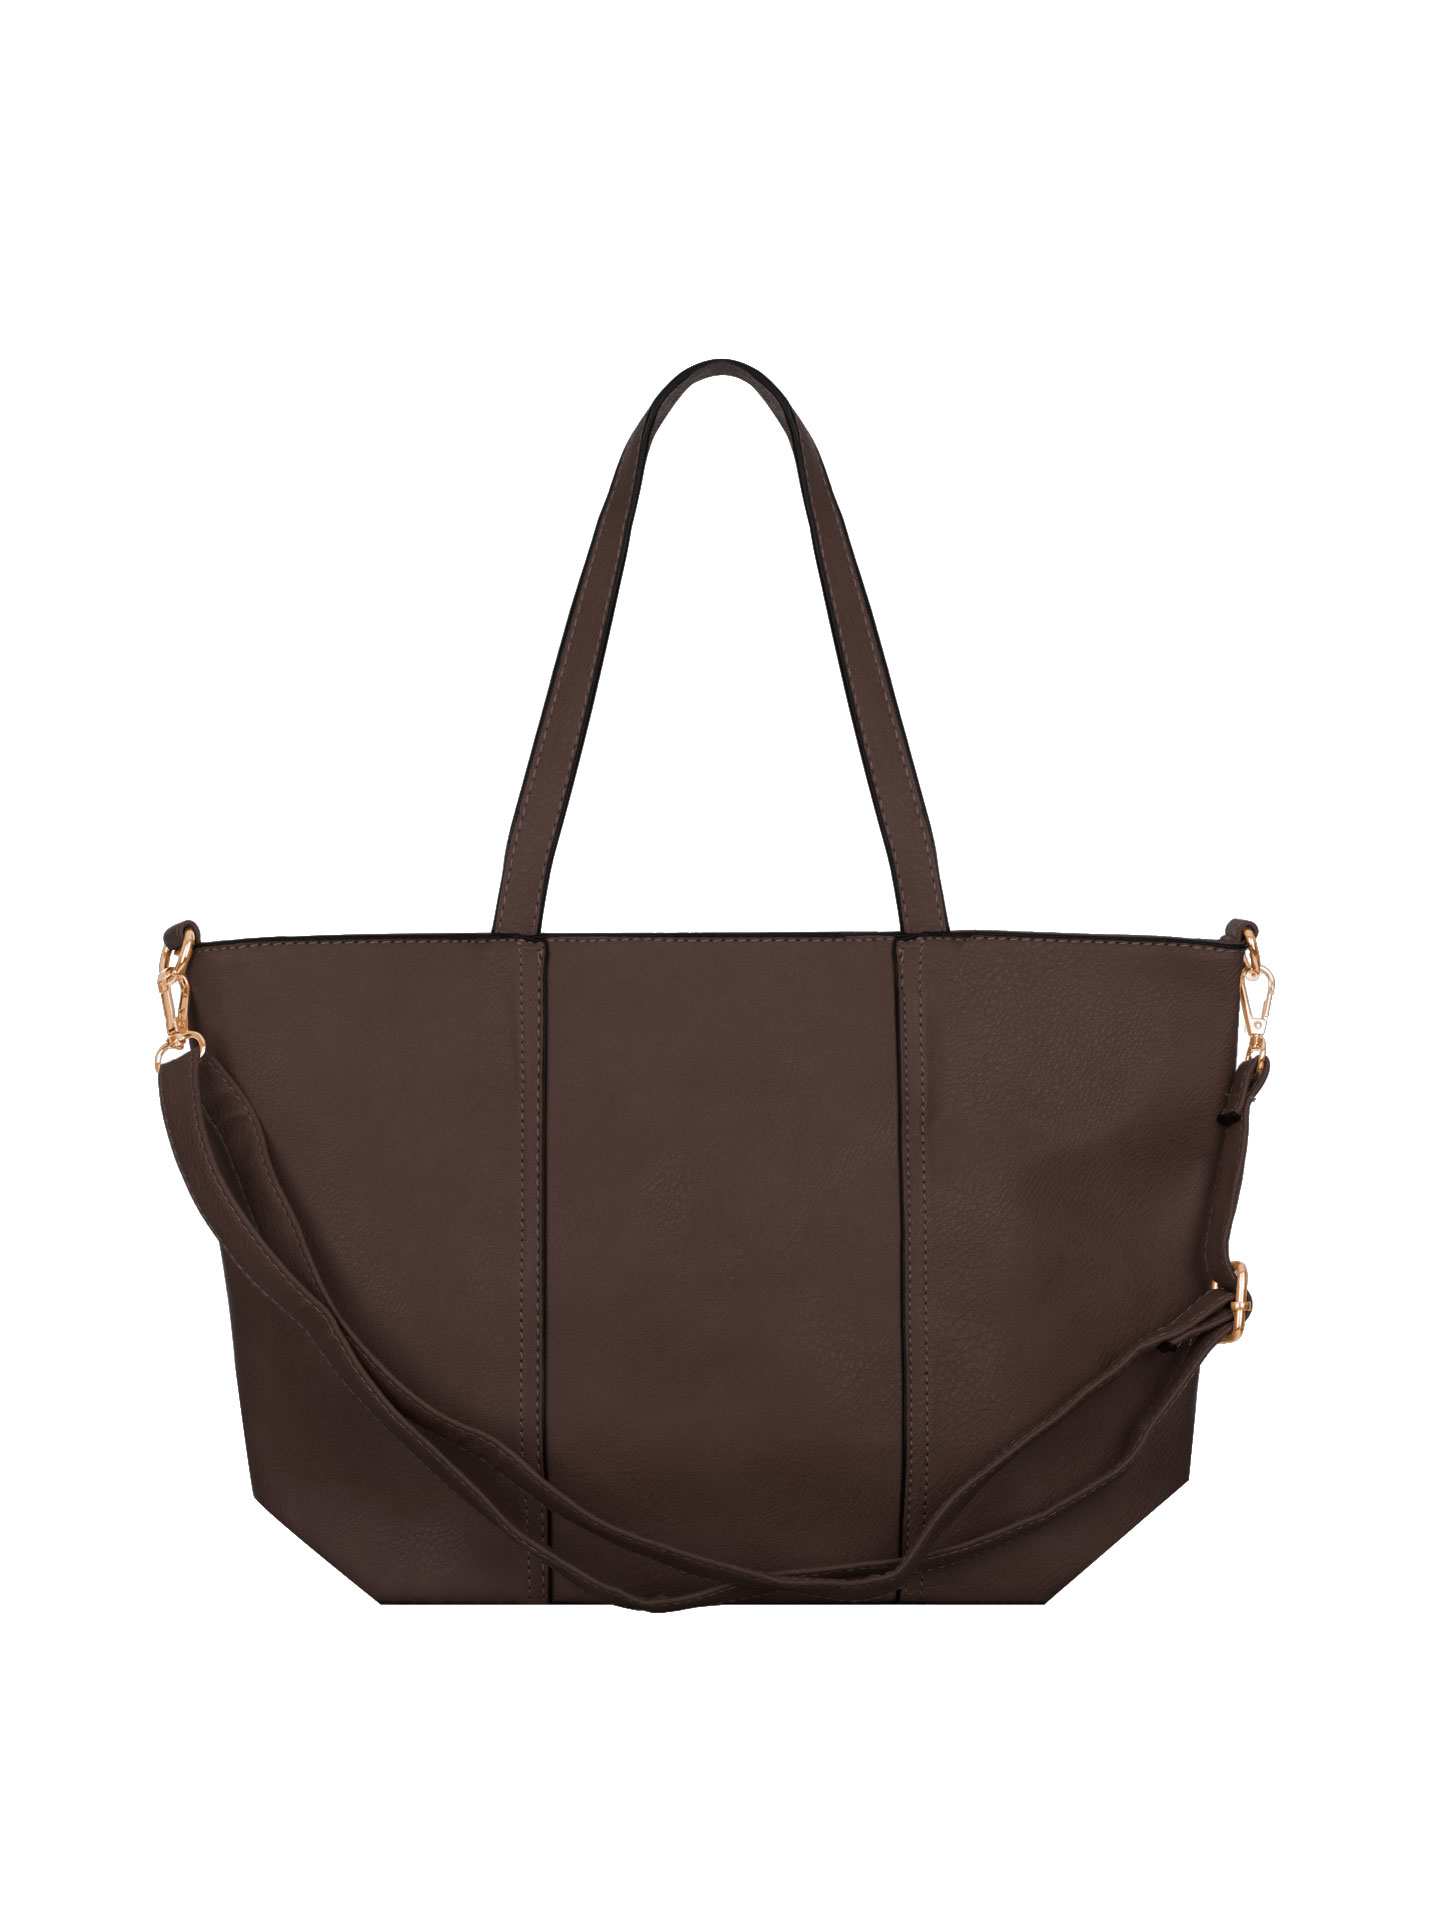 Shoulder bag with decorative seams in dark brown 91d0509b59c2e